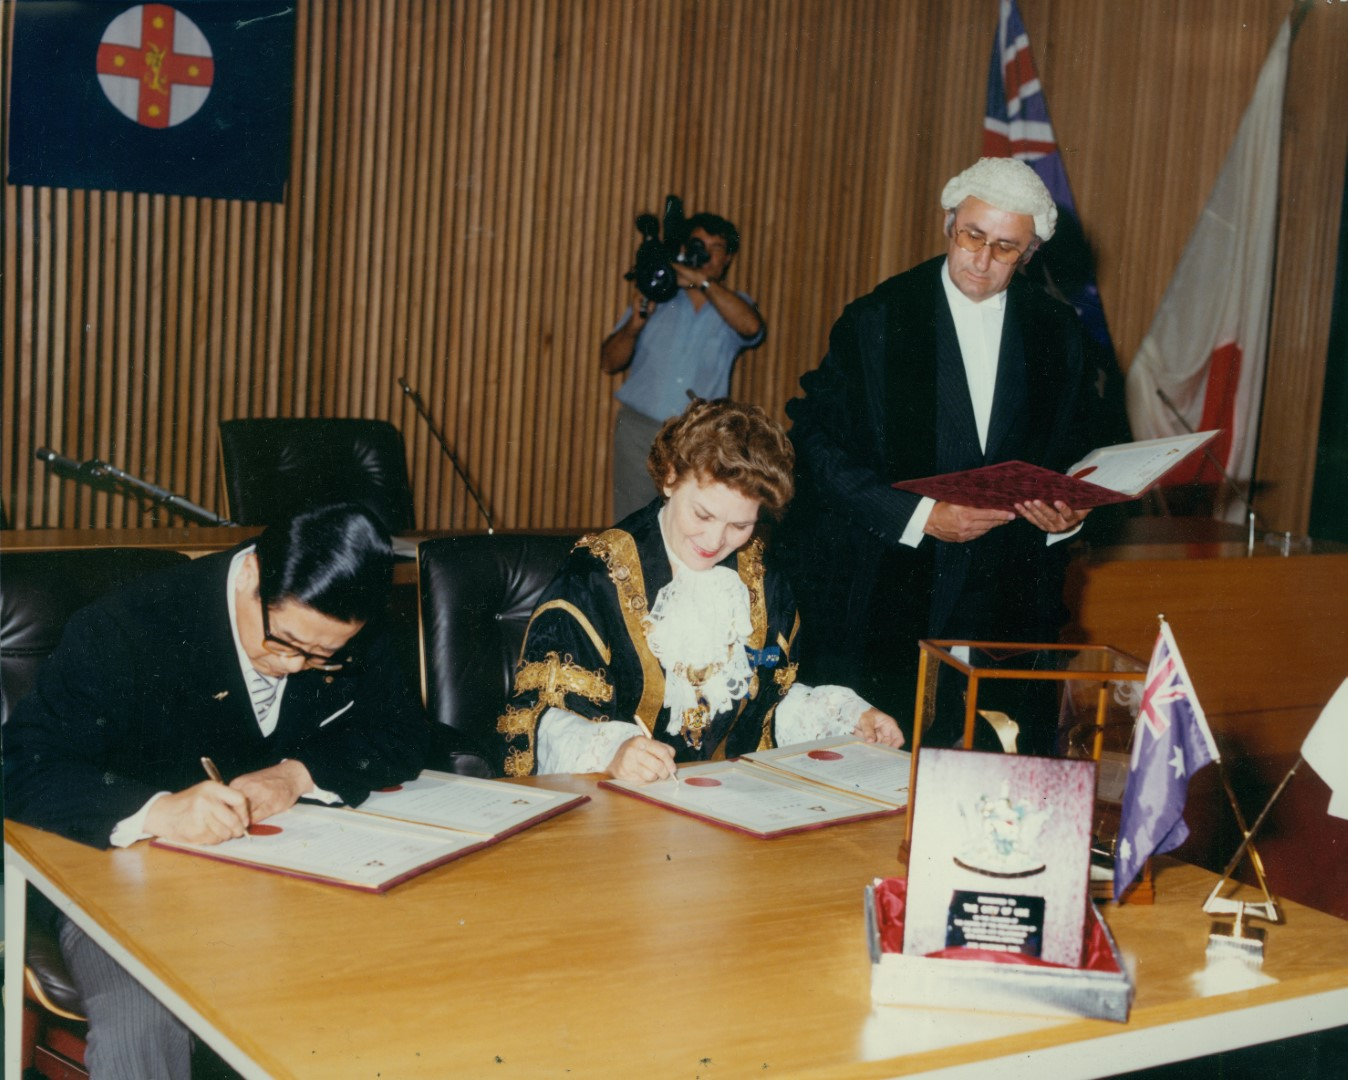 Mayor-of-Ube-City-Mr-Hideo-Futatsugi-and-Newcastle-Lord-Mayor-Joy-Cummings-sign-the-Sister-City-agreement-21-November-1980.jpg